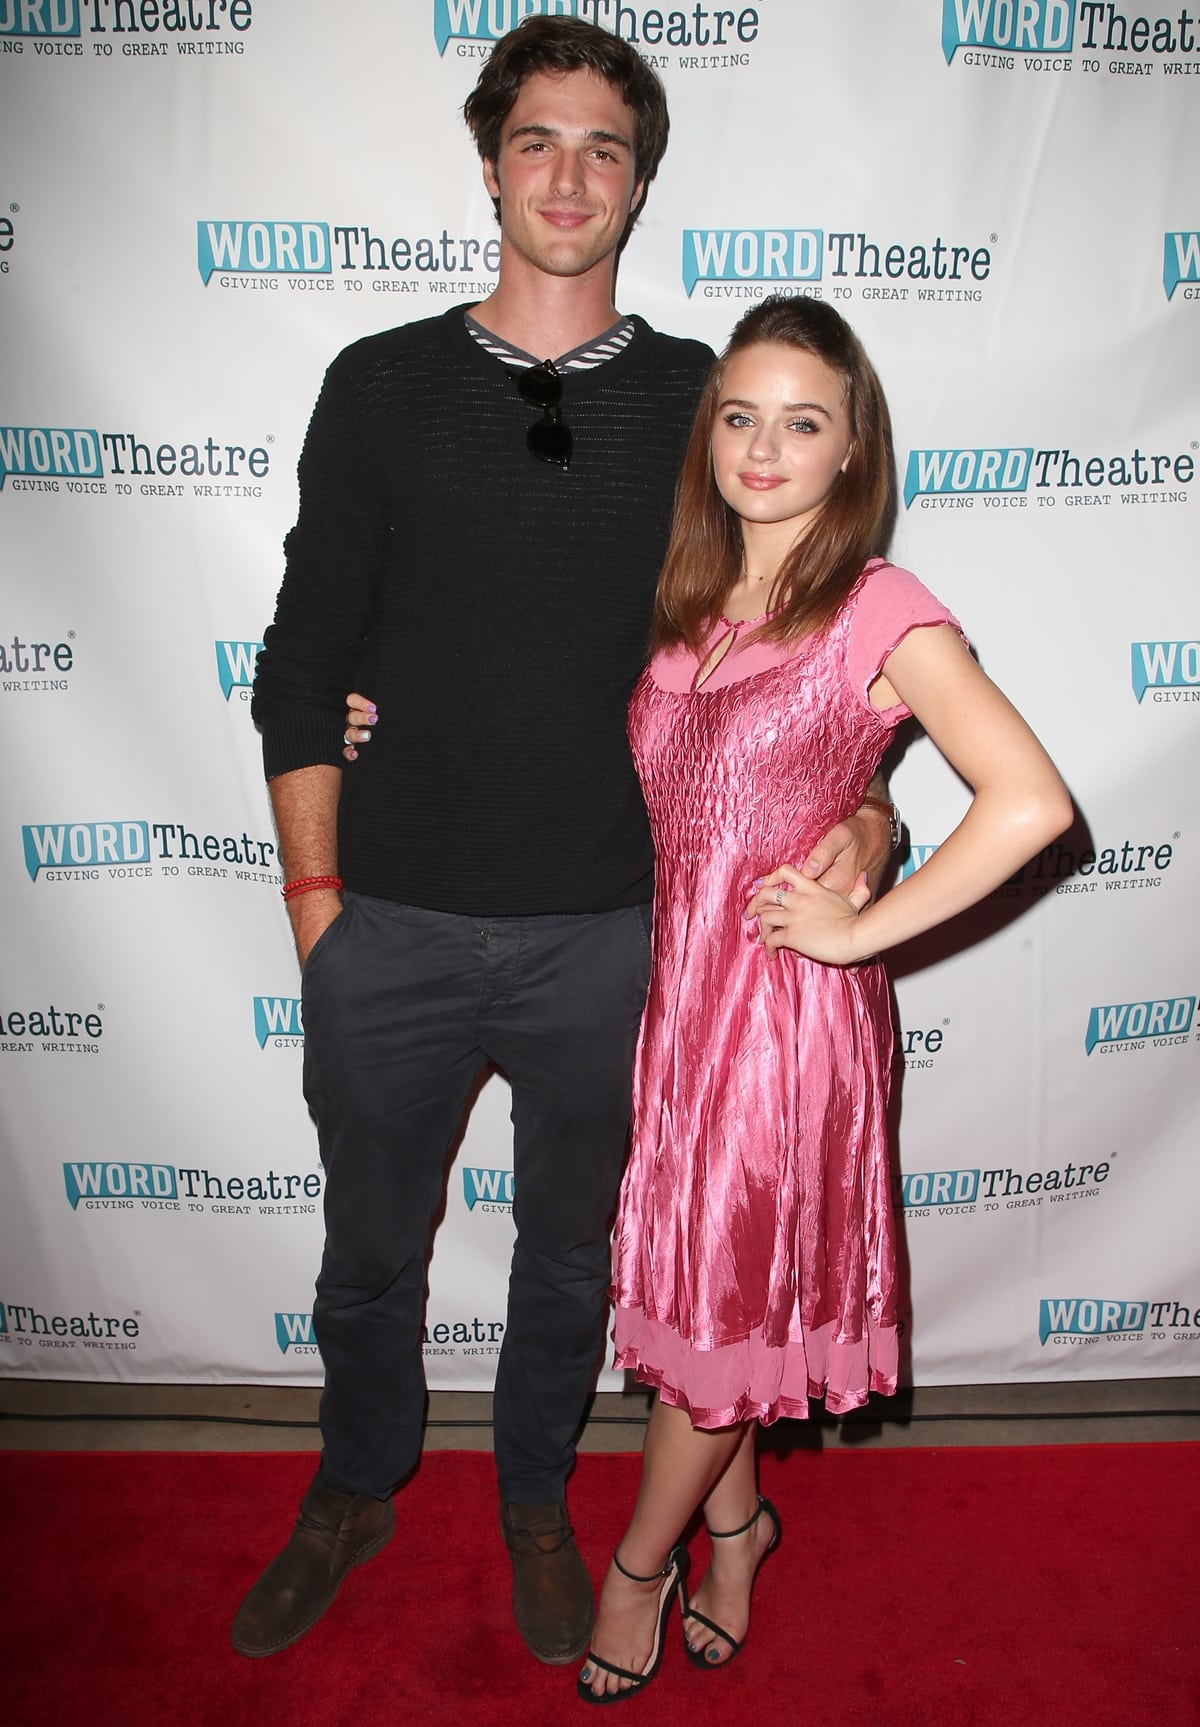 Joey King dated much taller Jacob Elordi from 2017 to early 2019